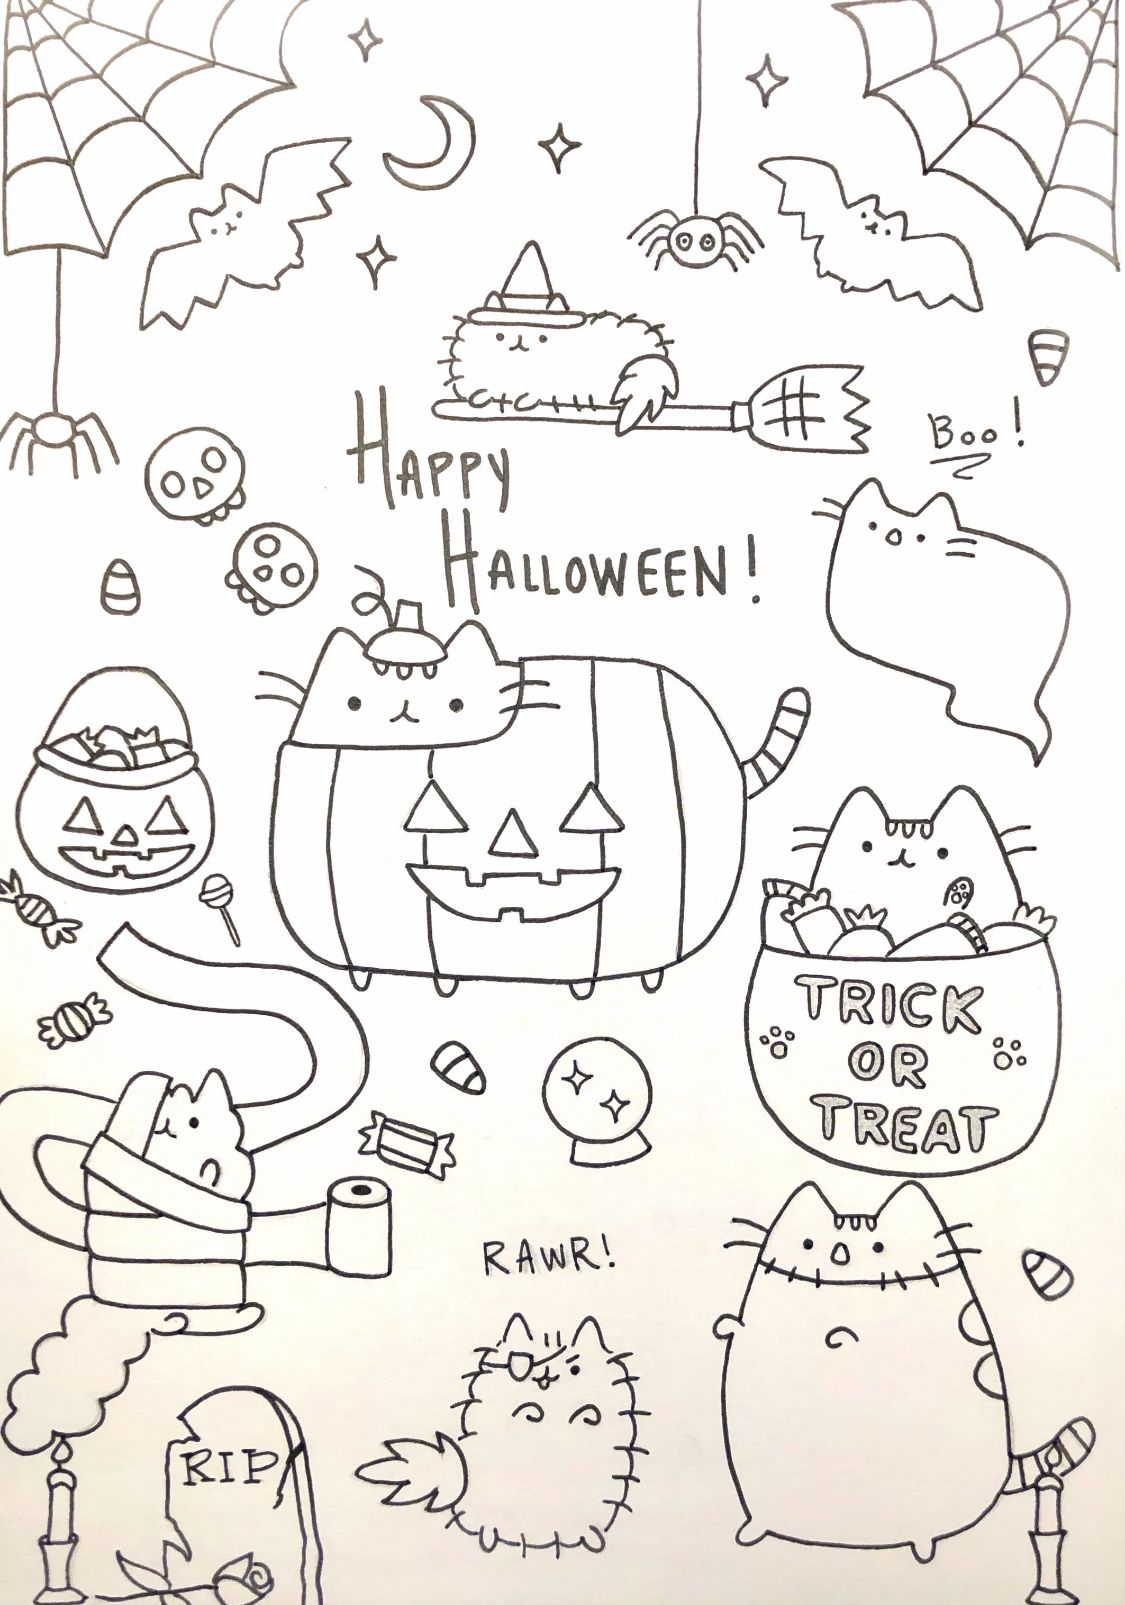 Halloween Sheens Coloring Page Coloring Pages Halloween Coloring Pages Coloring Books